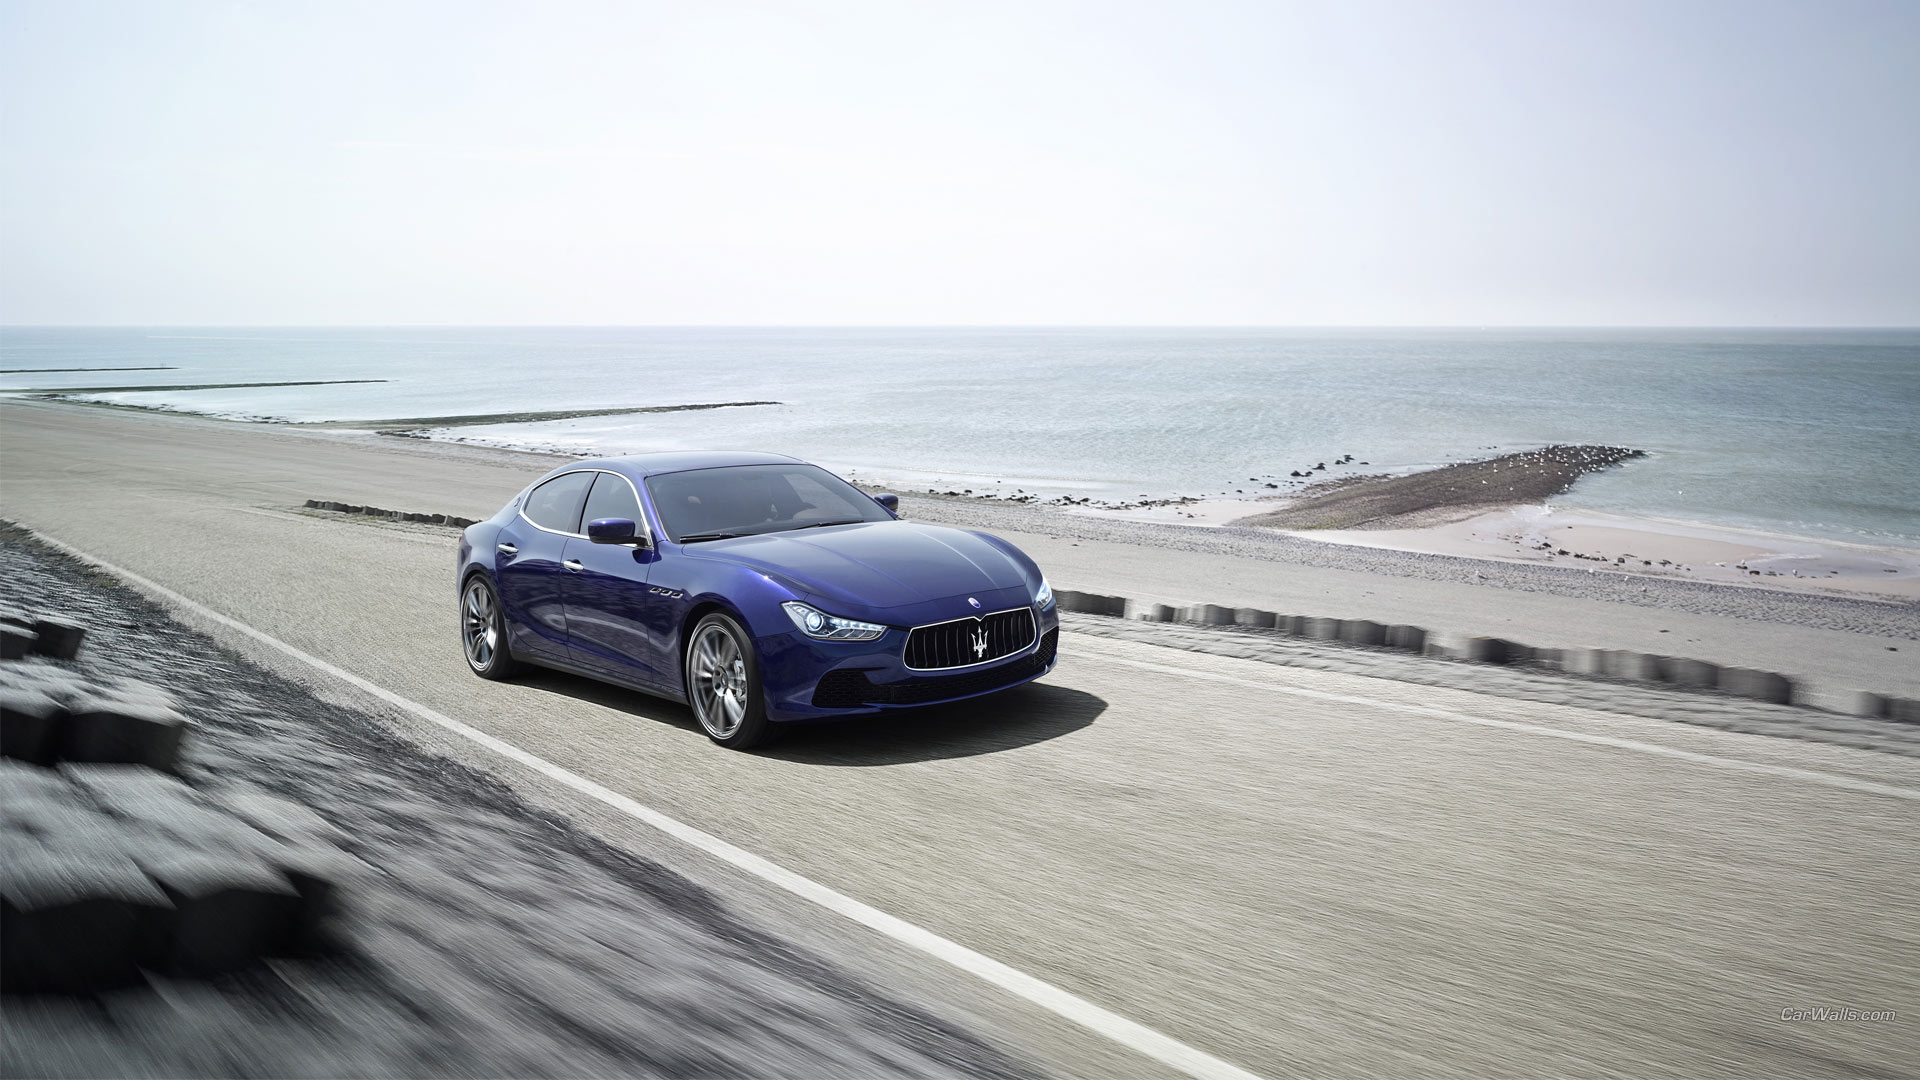 Hd Ghibli Wallpaper 1080: Maserati Ghibli Full HD Wallpaper And Background Image